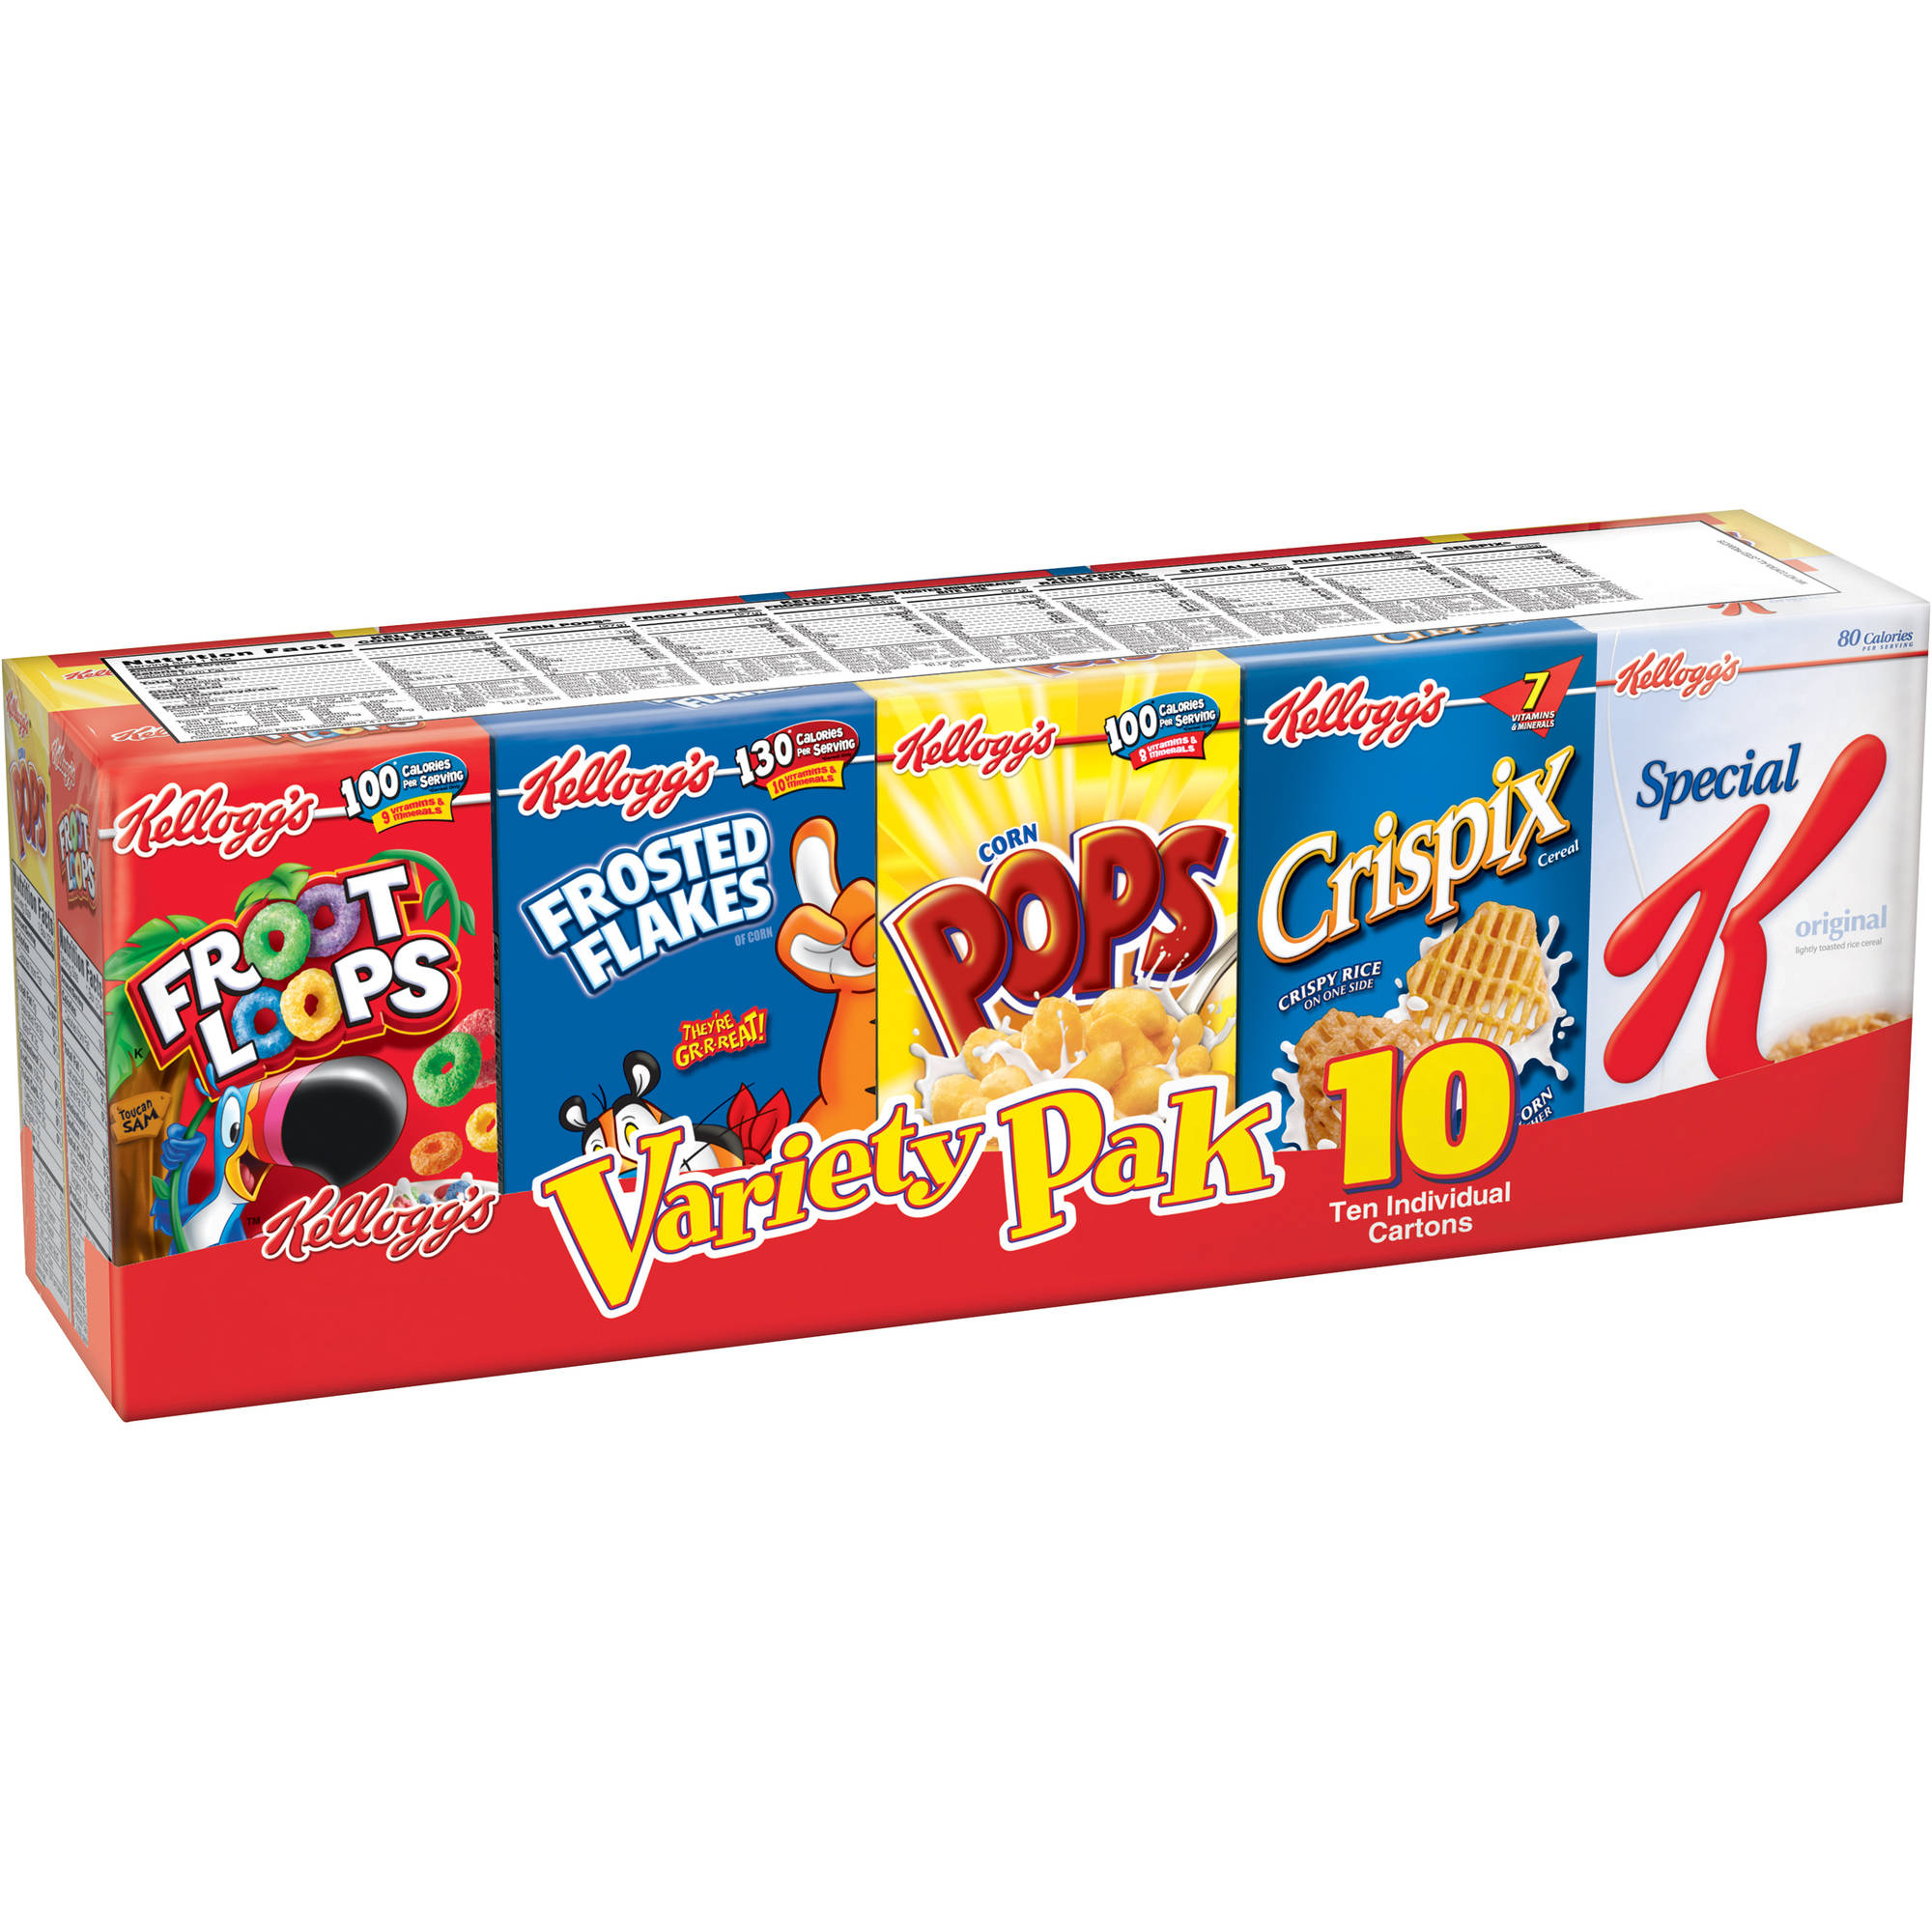 Kellogg's Assorted Cereal Variety Pack, 10 count, 9.63 oz